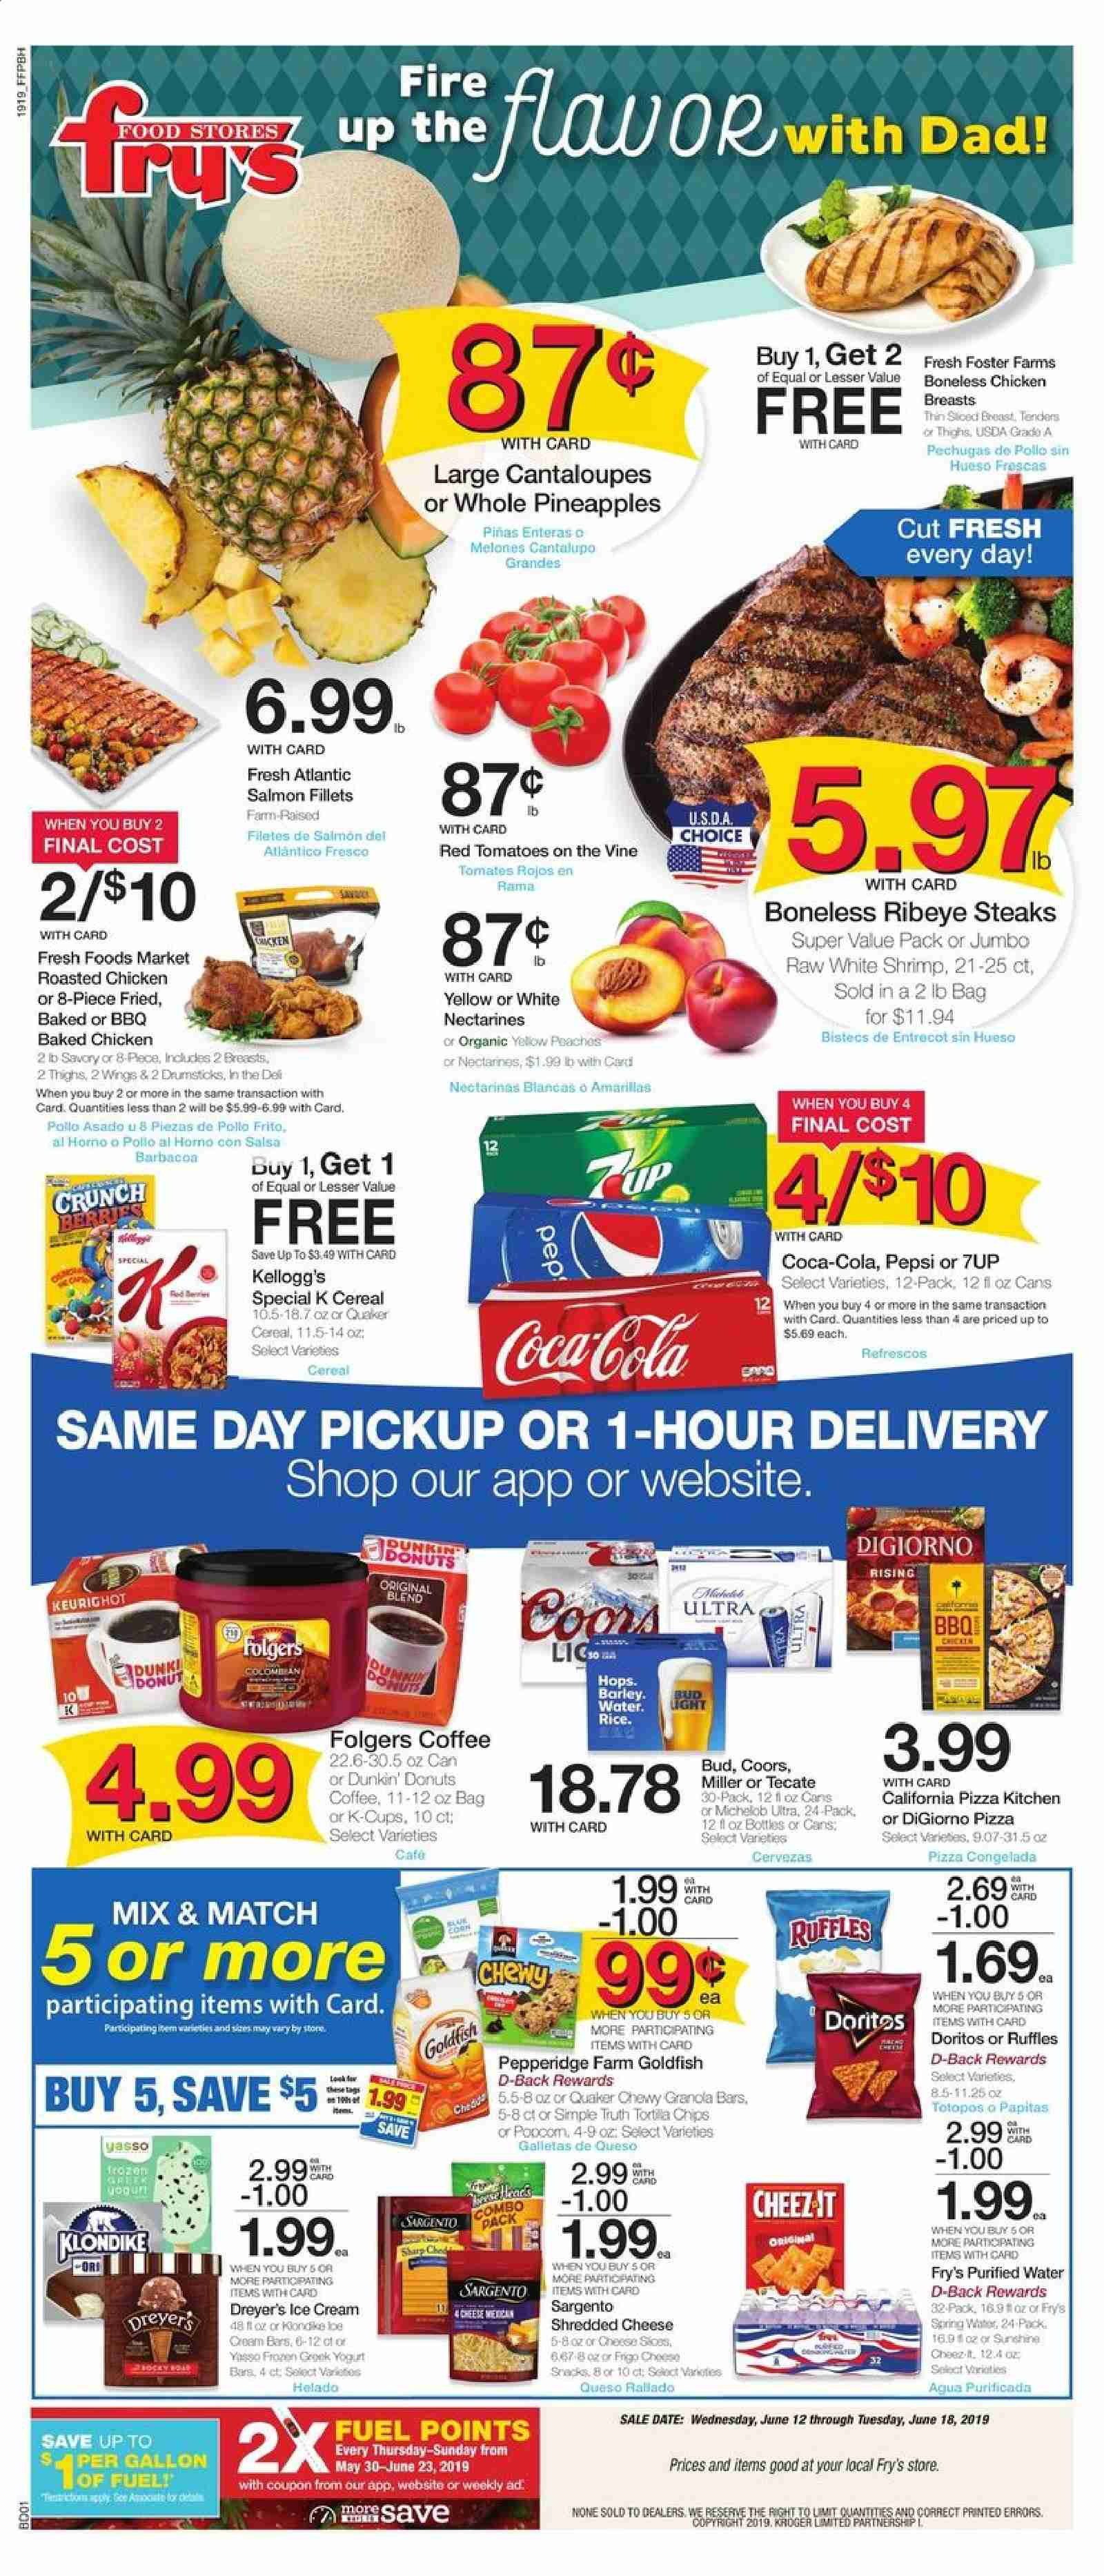 Fry's Flyer - 06.12.2019 - 06.18.2019 - Sales products - Coors, Michelob, cantaloupe, tomatoes, nectarines, pineapple, donut, salmon, shrimps, pizza, shredded cheese, cheese, Rama, salsa, Doritos, chips, barley, cereals, rice, Coca-Cola, Pepsi, water, coffee, Folgers, chicken, chicken breast, Frozen, Sharp, cream. Page 1.